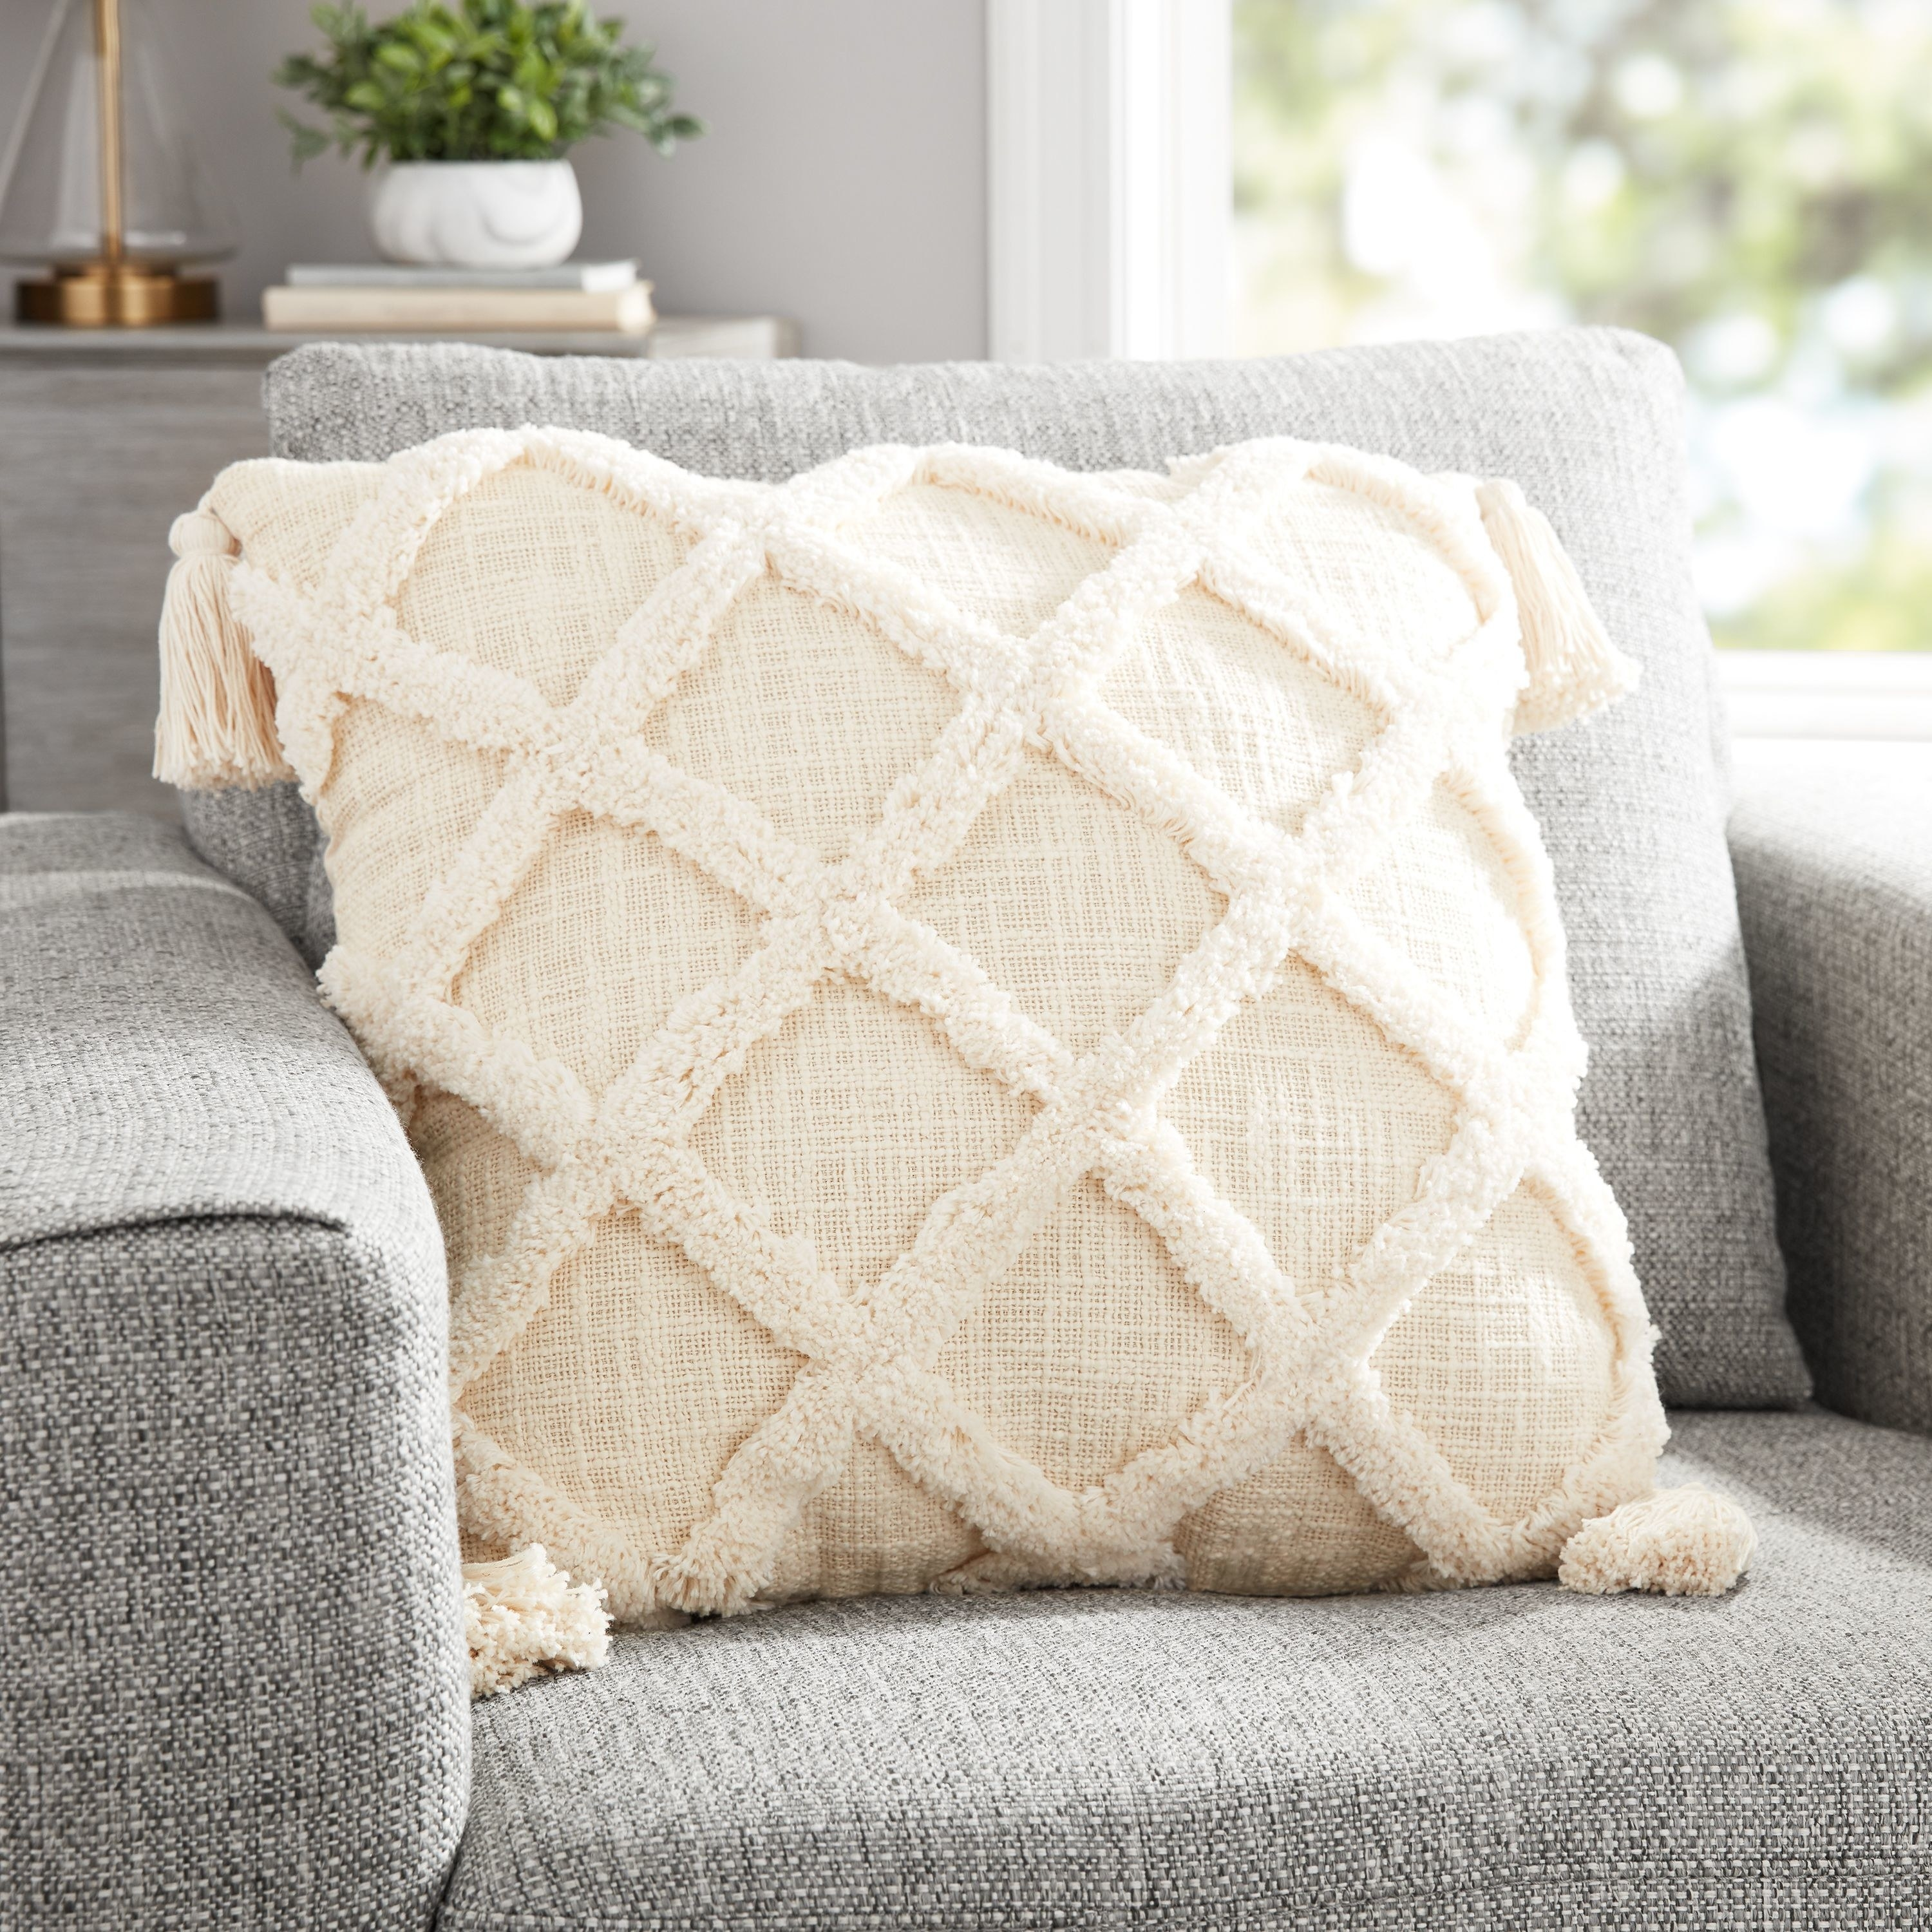 a throw pillow with diamond texture design and tassels